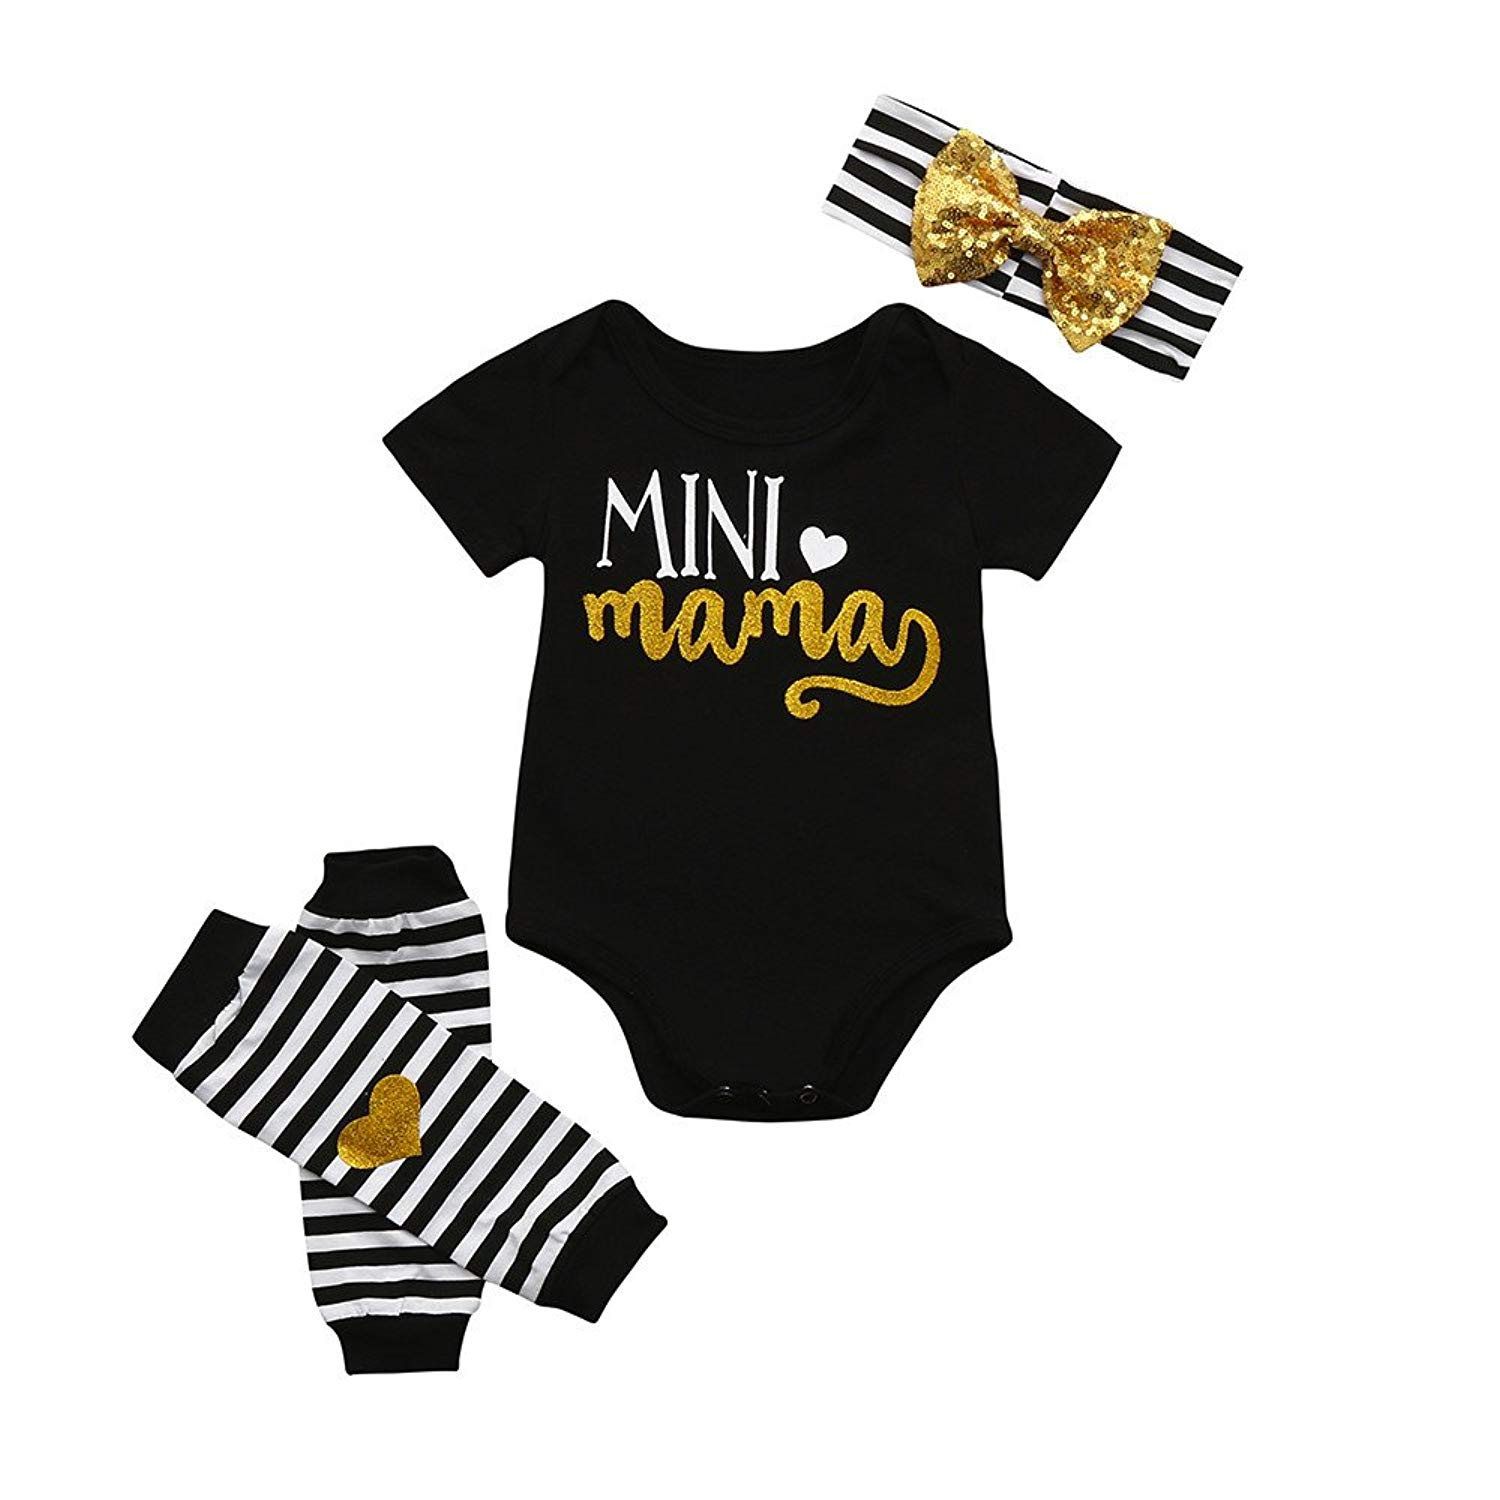 77960f1b2 Get Quotations · 3pcs Newborn Toddler Baby Boys Girls Letter Romper+ Leg  Warmers+Headband Halloween Autumn Outfit Set